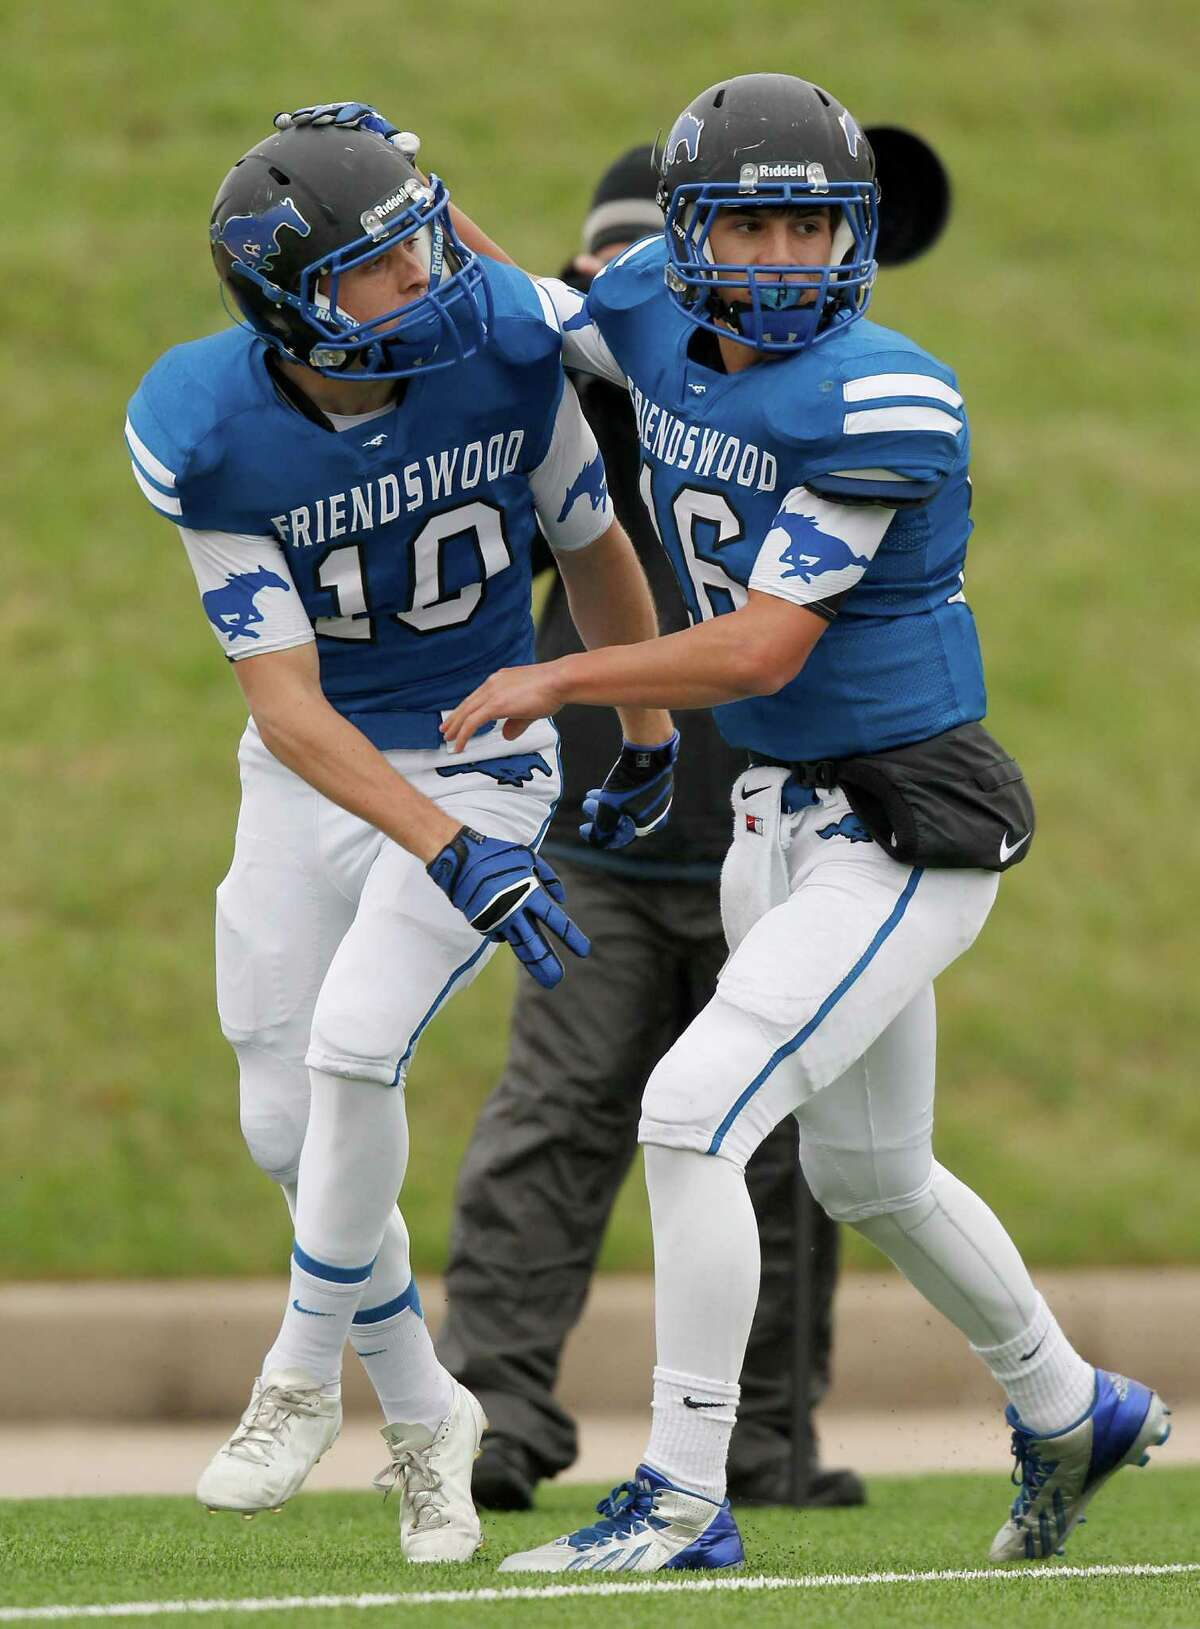 11/23/13: Friendswood Mustan Tyler Page (16) is congratulated by Roemello McCardell (10) after Page ran for 75 yard touchdown run against the Stratford Spartans in the Class 4 A Division One Play-Off game at Mercer Stadium in Sugarland, Texas. Stratford won 34 to 7.